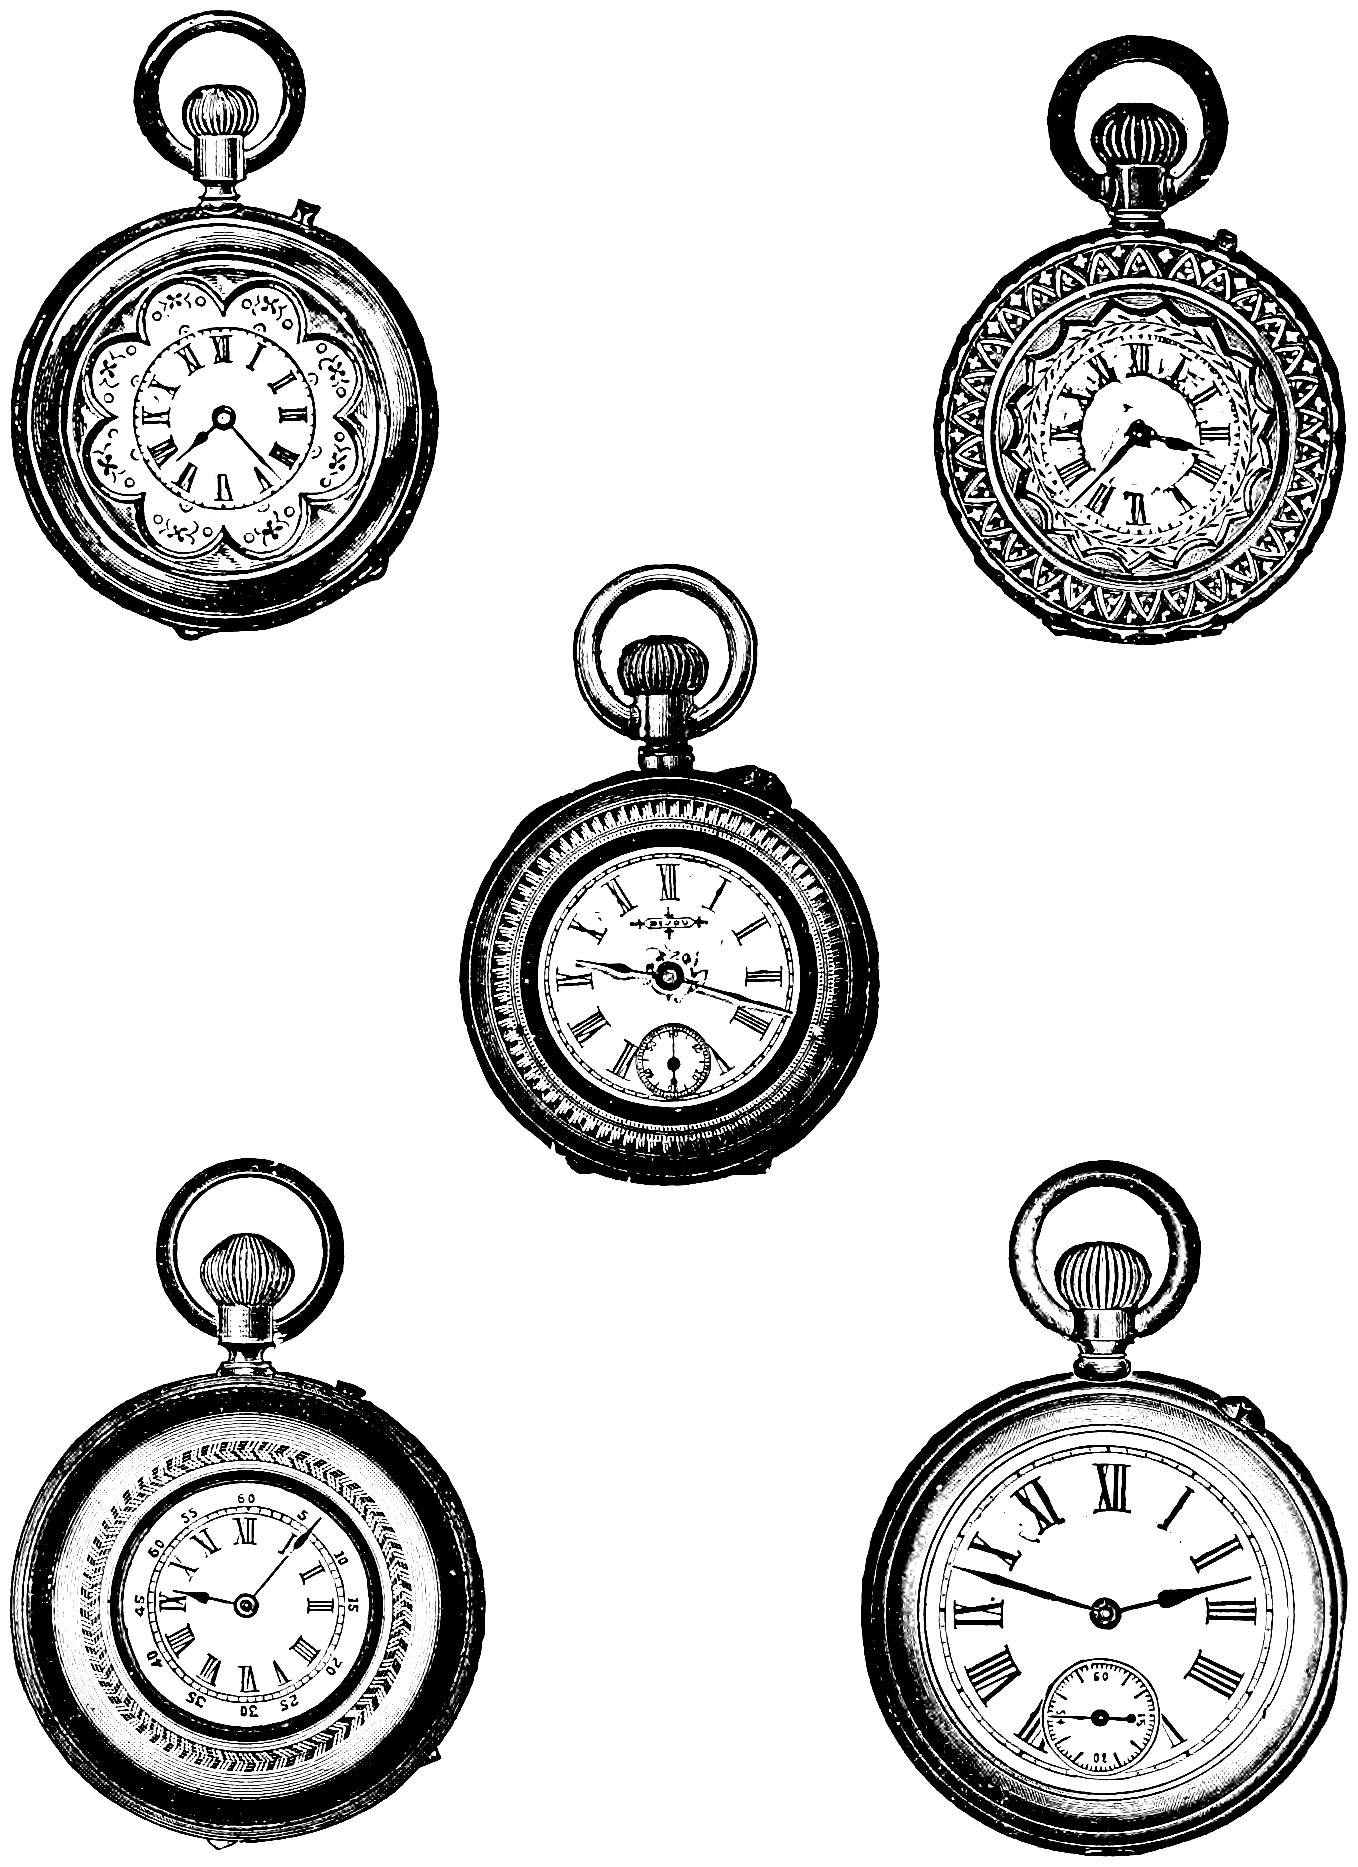 Clip Art Steampunk Clipart steampunk hand clipart kid free clip art vintage pocket watch oh so nifty graphics